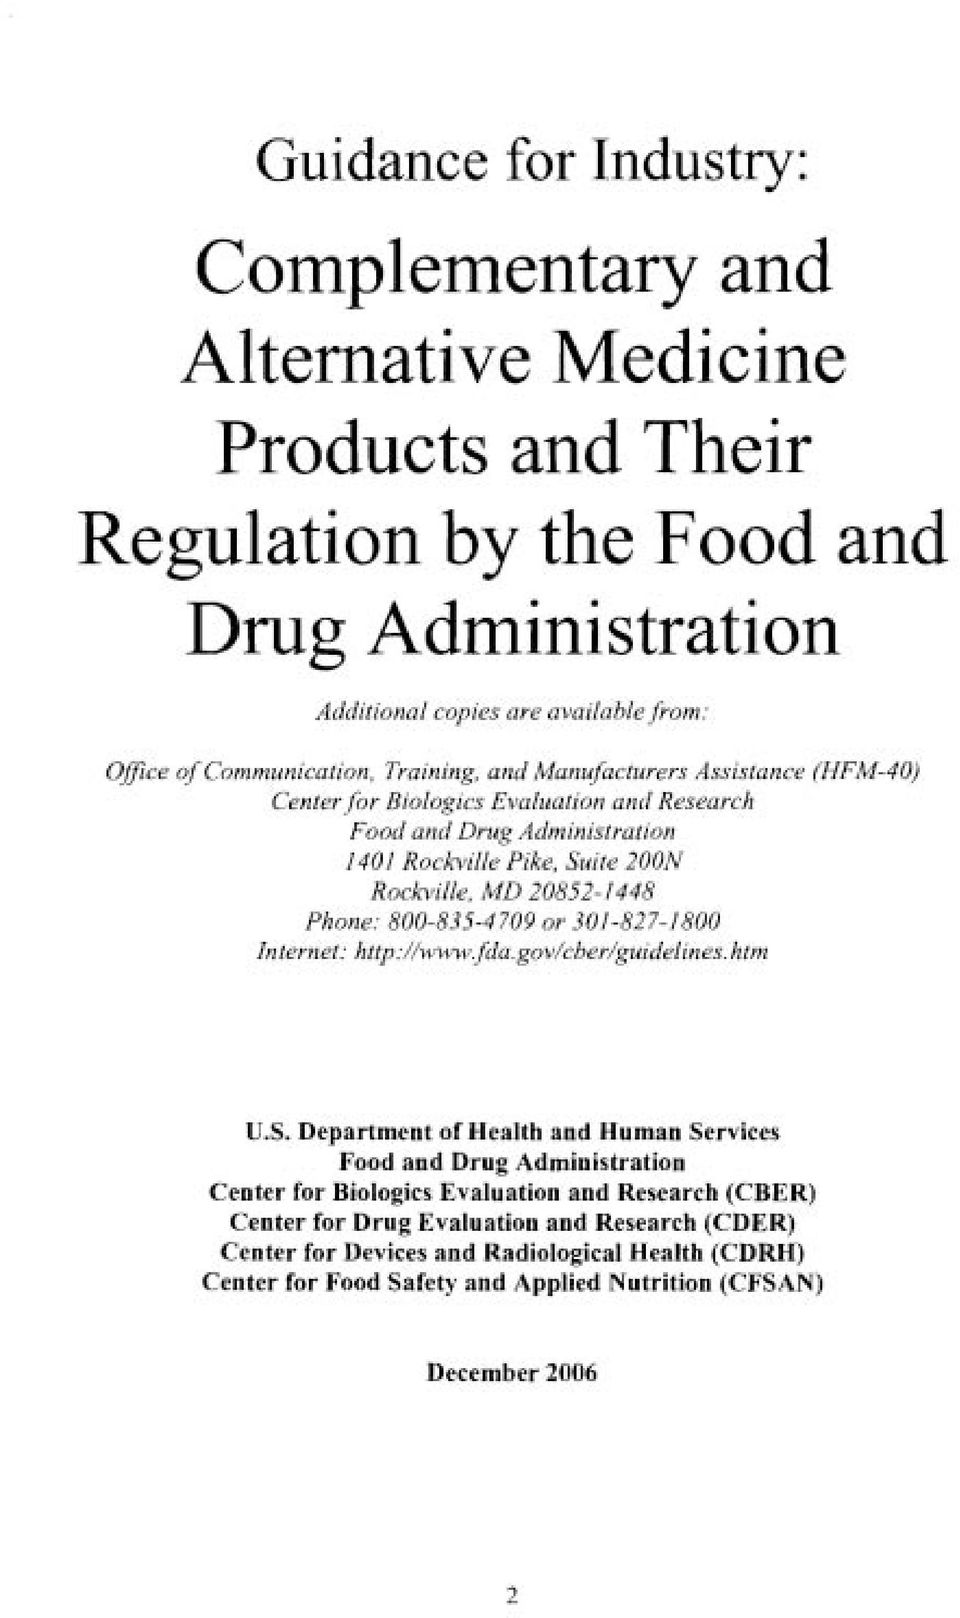 20852-1448 Phone: 800-835-4 709 or 301-827-1 800 Internet: http://www. fda.gov/cber/guidelines.htm U.S.